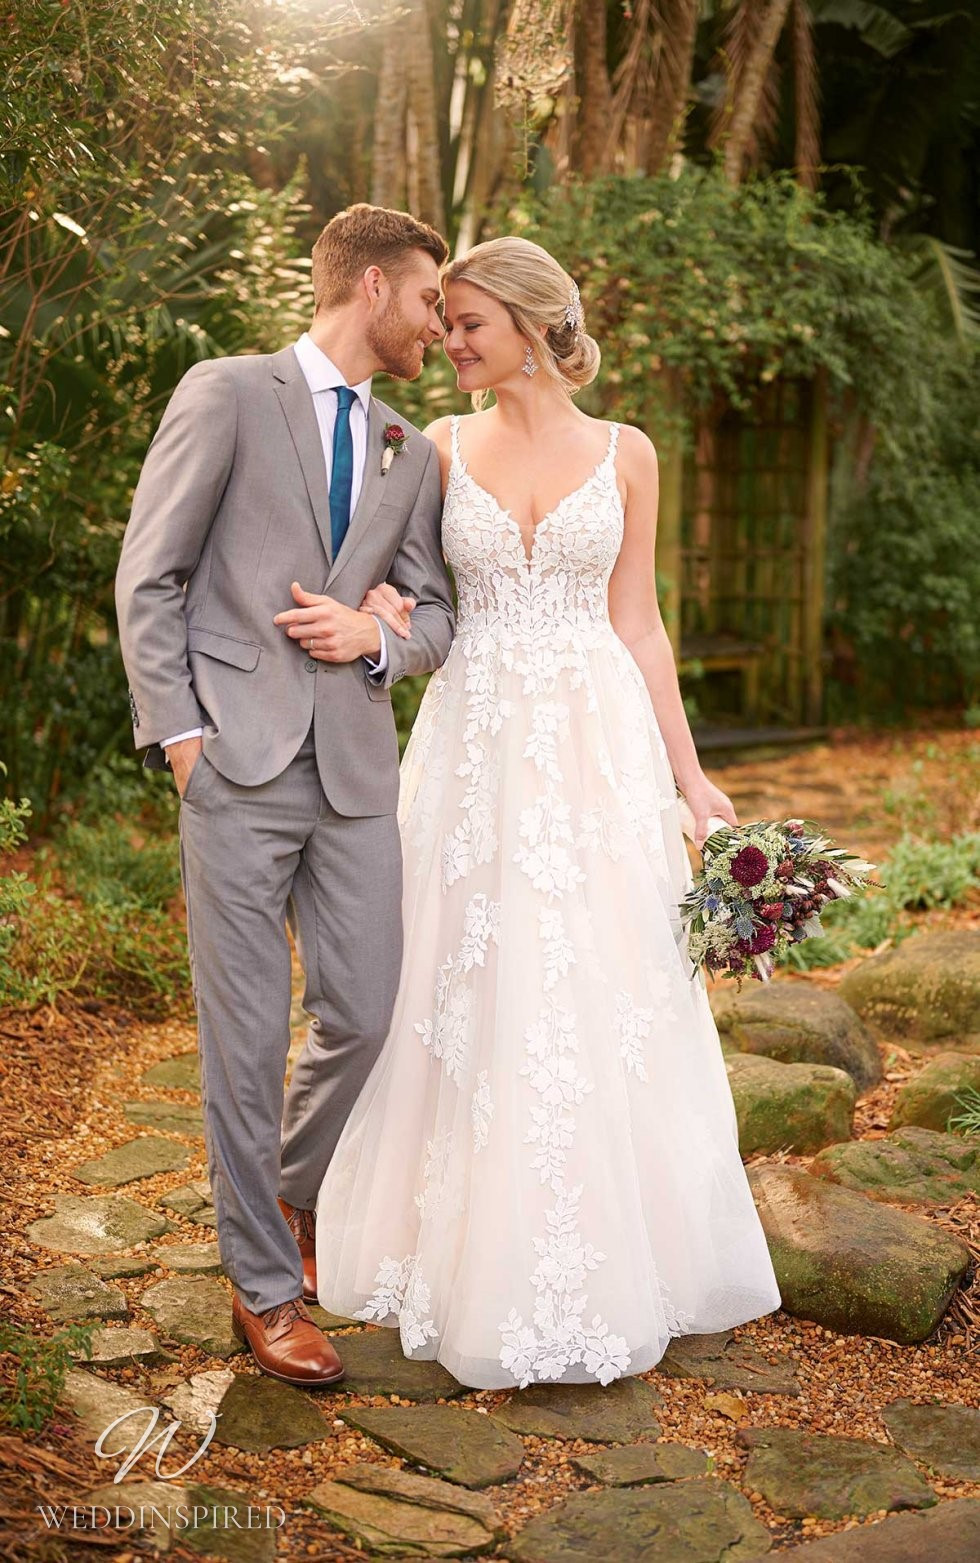 An Essense of Australia romantic blush lace and tulle A-line wedding dress